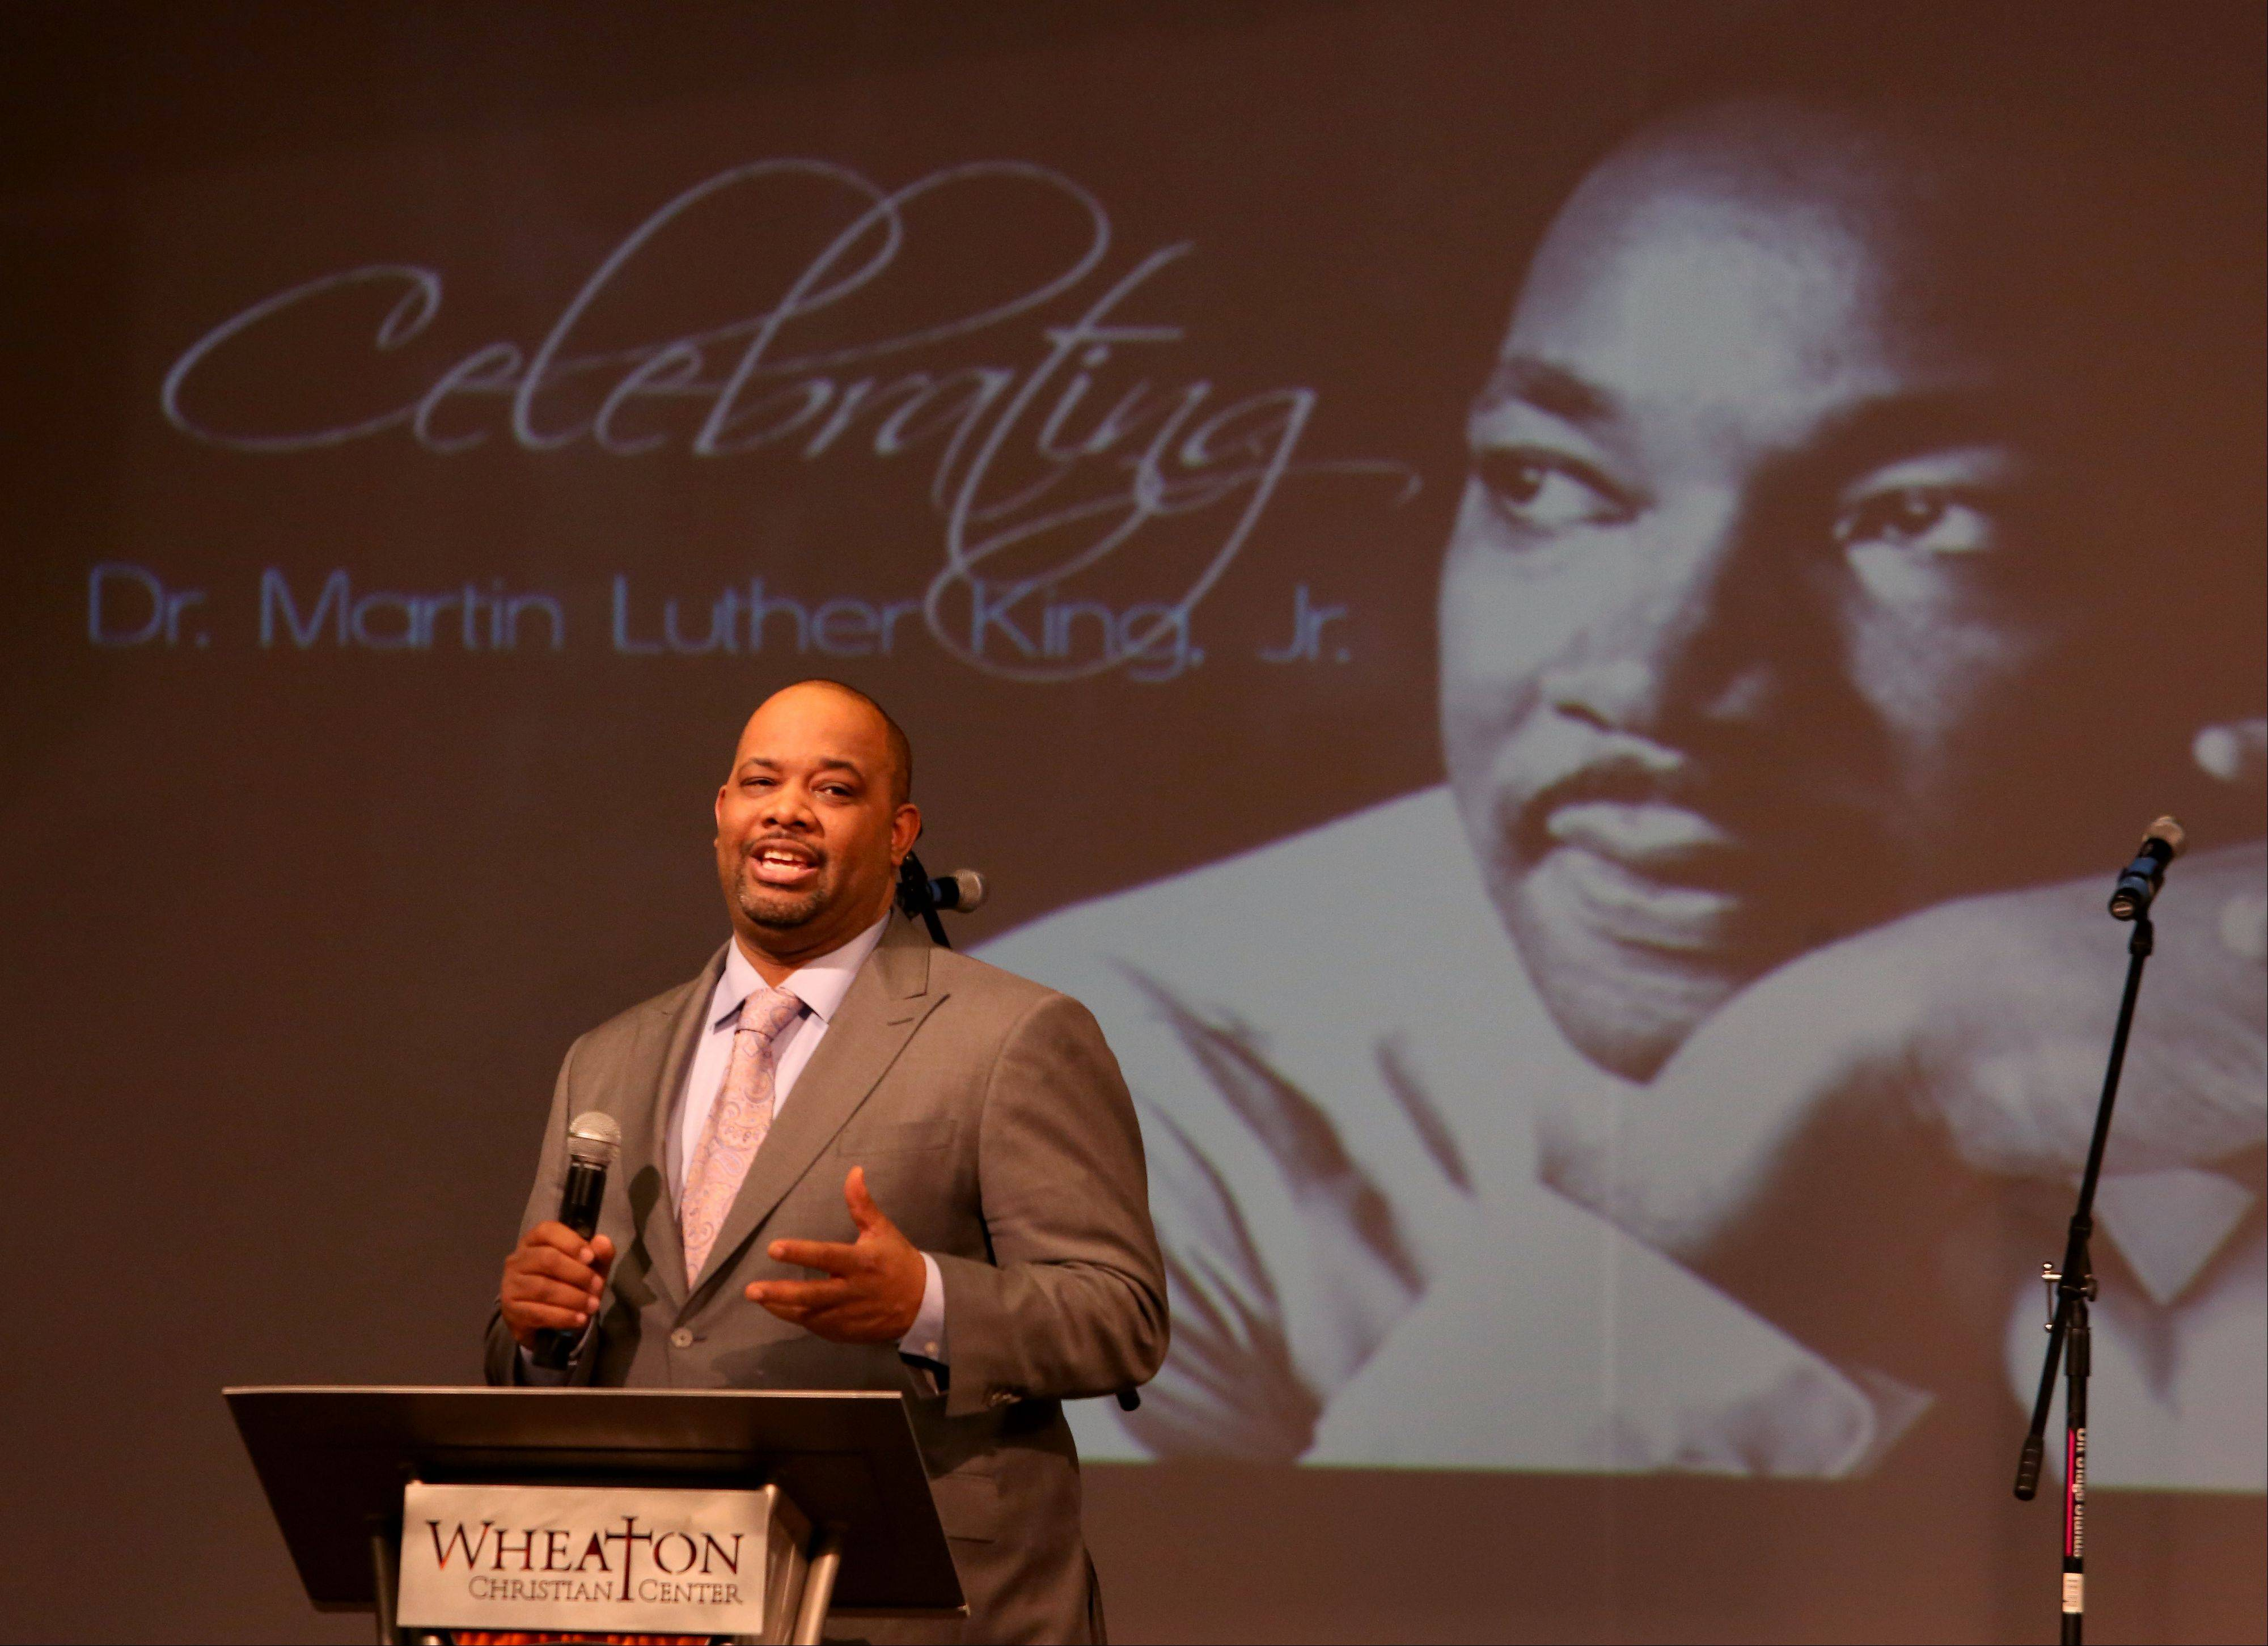 Pastor urges Carol Stream audience to be world-changers